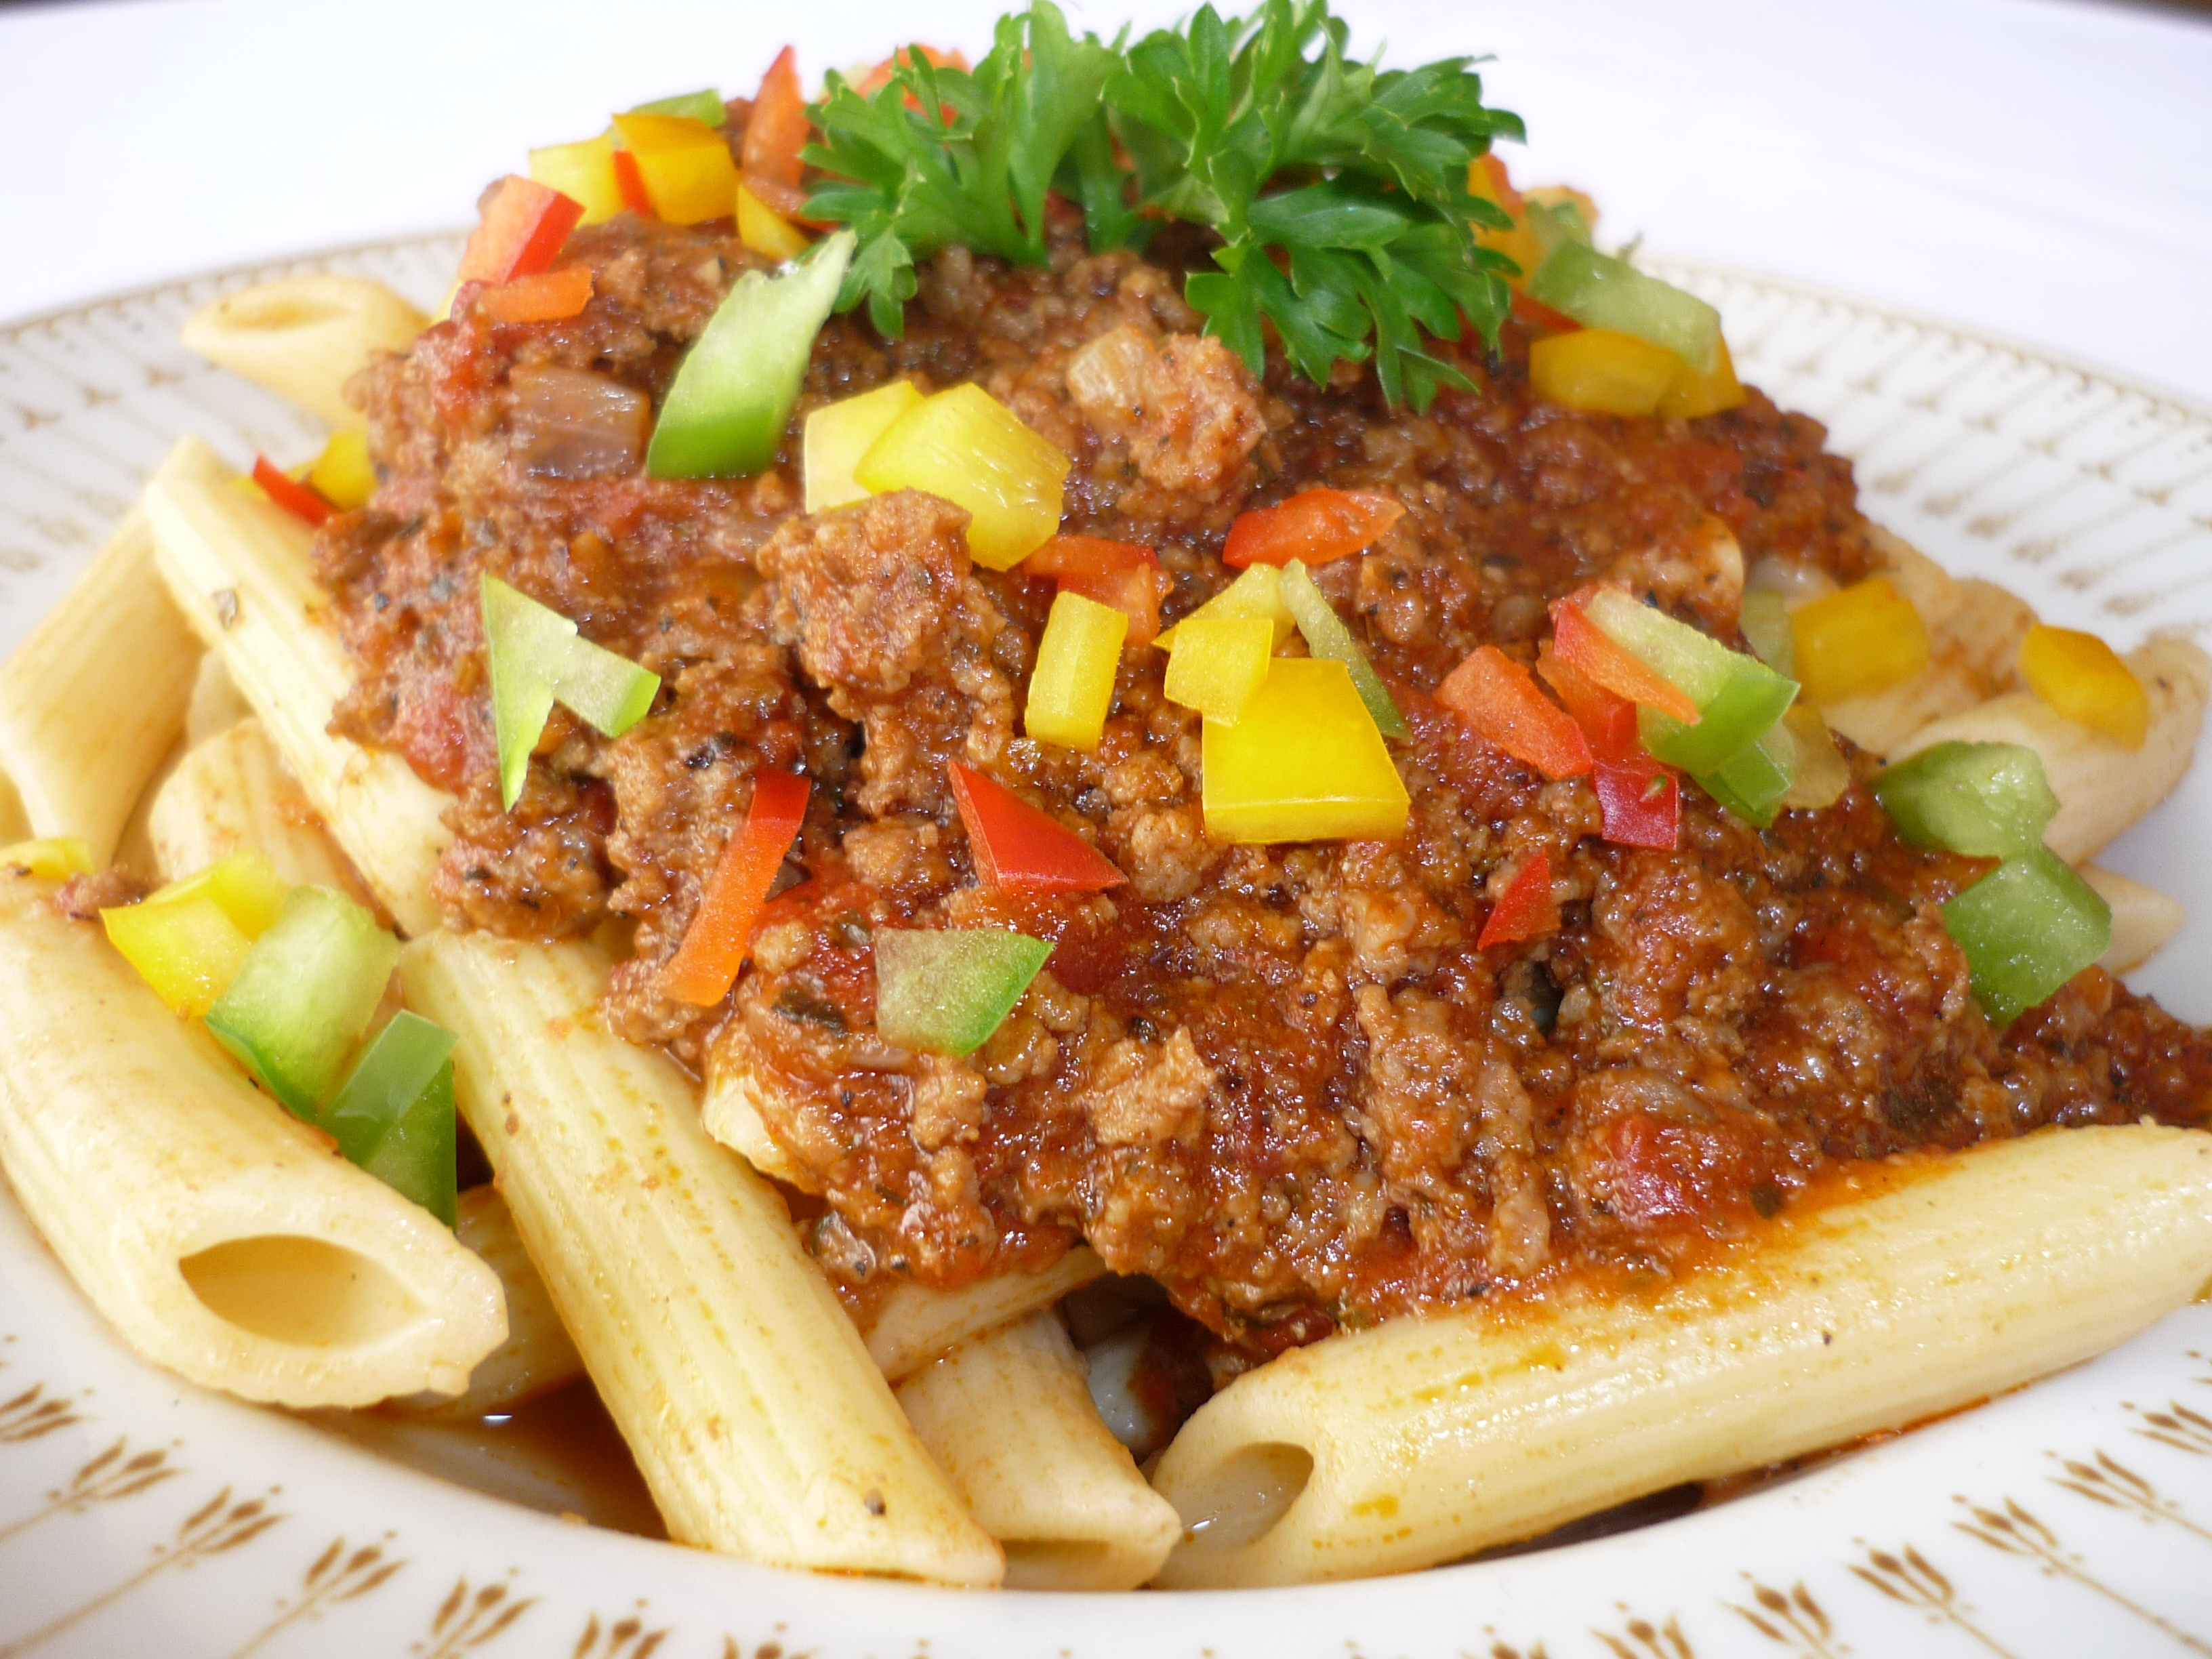 Our Bolognese sauce makes this dish a memorable taste experience ...